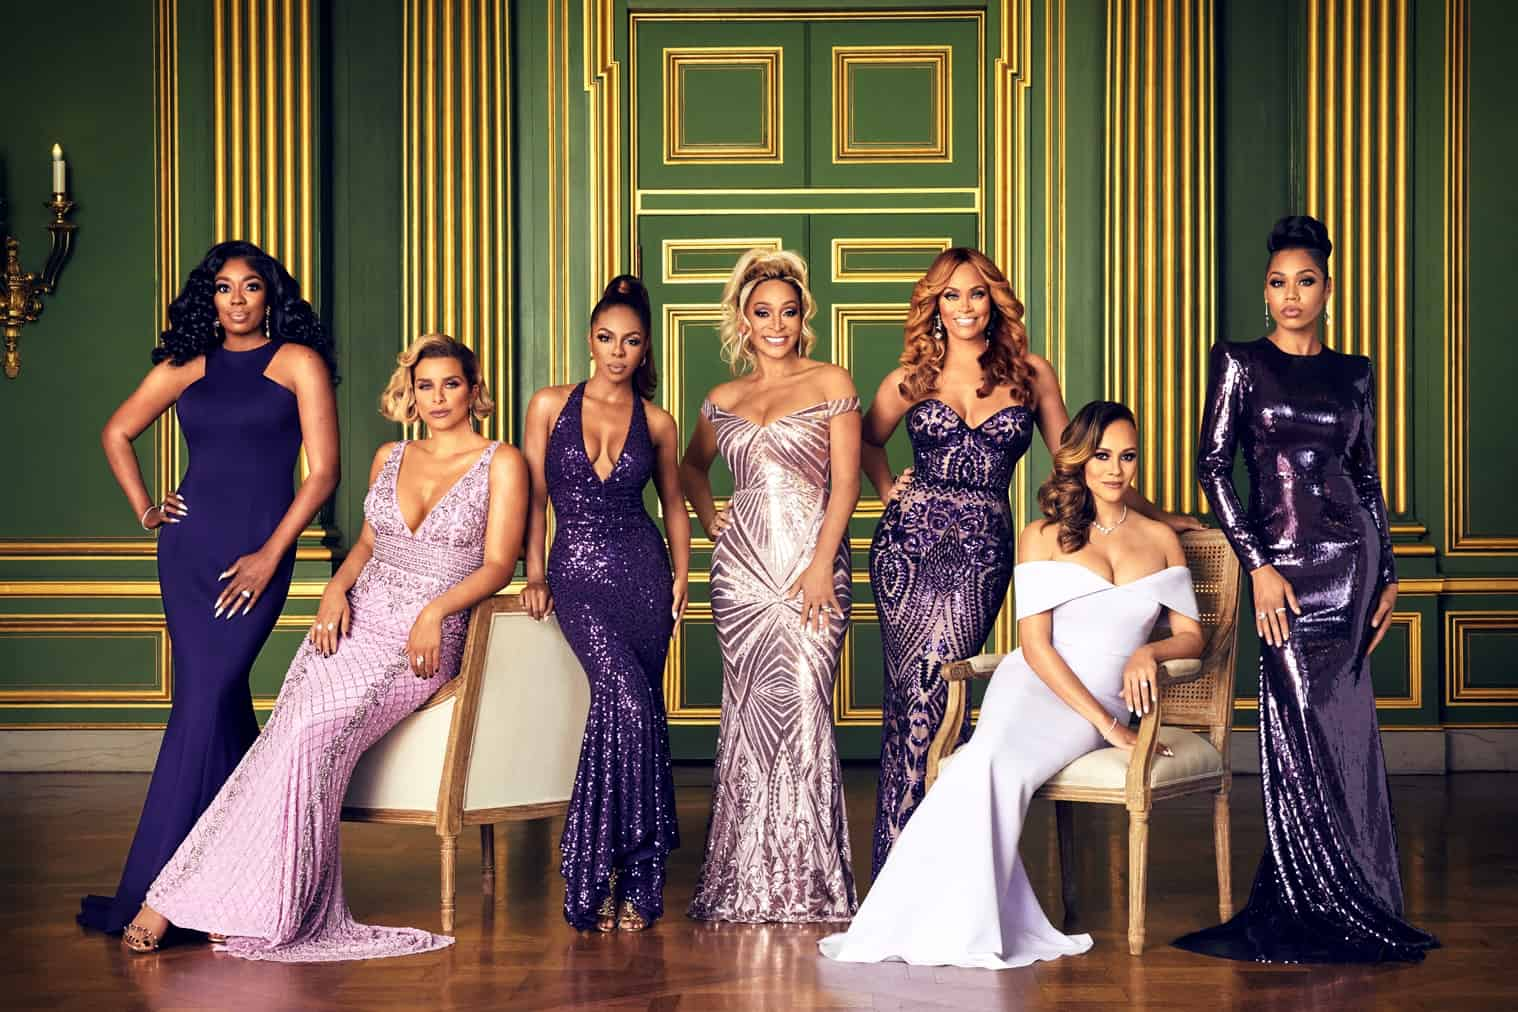 VIDEO: Watch the RHOP Season 5 Trailer! Ashley Darby's Marriage Faces Scandal as Monique Samuels and Candiace Dillard Bassett's Fight is Exposed and New Housewife Wendy Osefo Joins Cast